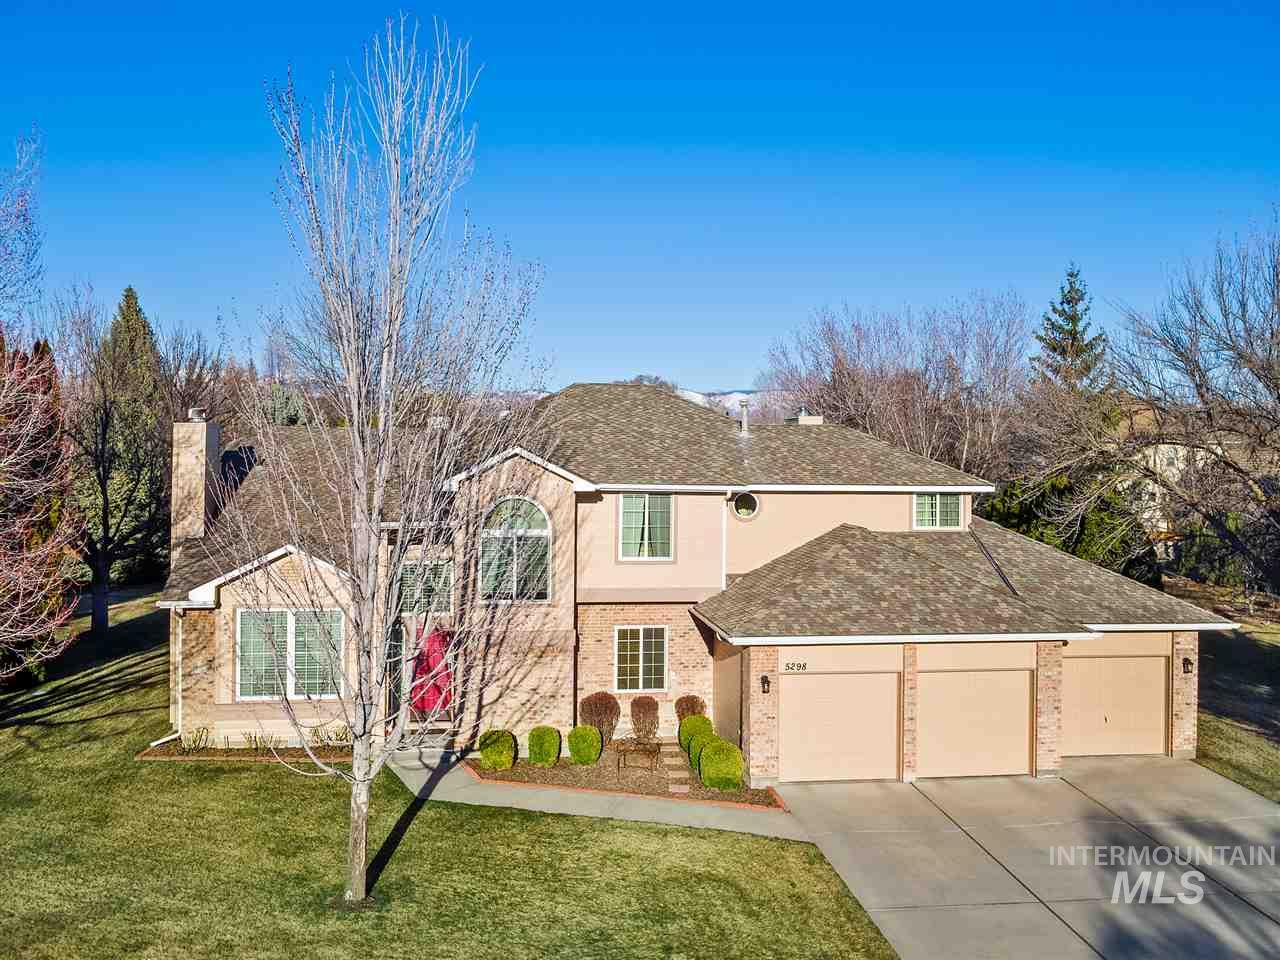 5298 N Hickory Tree, Boise, Idaho 83713-2492, 4 Bedrooms, 3.5 Bathrooms, Residential For Sale, Price $450,000, 98722689